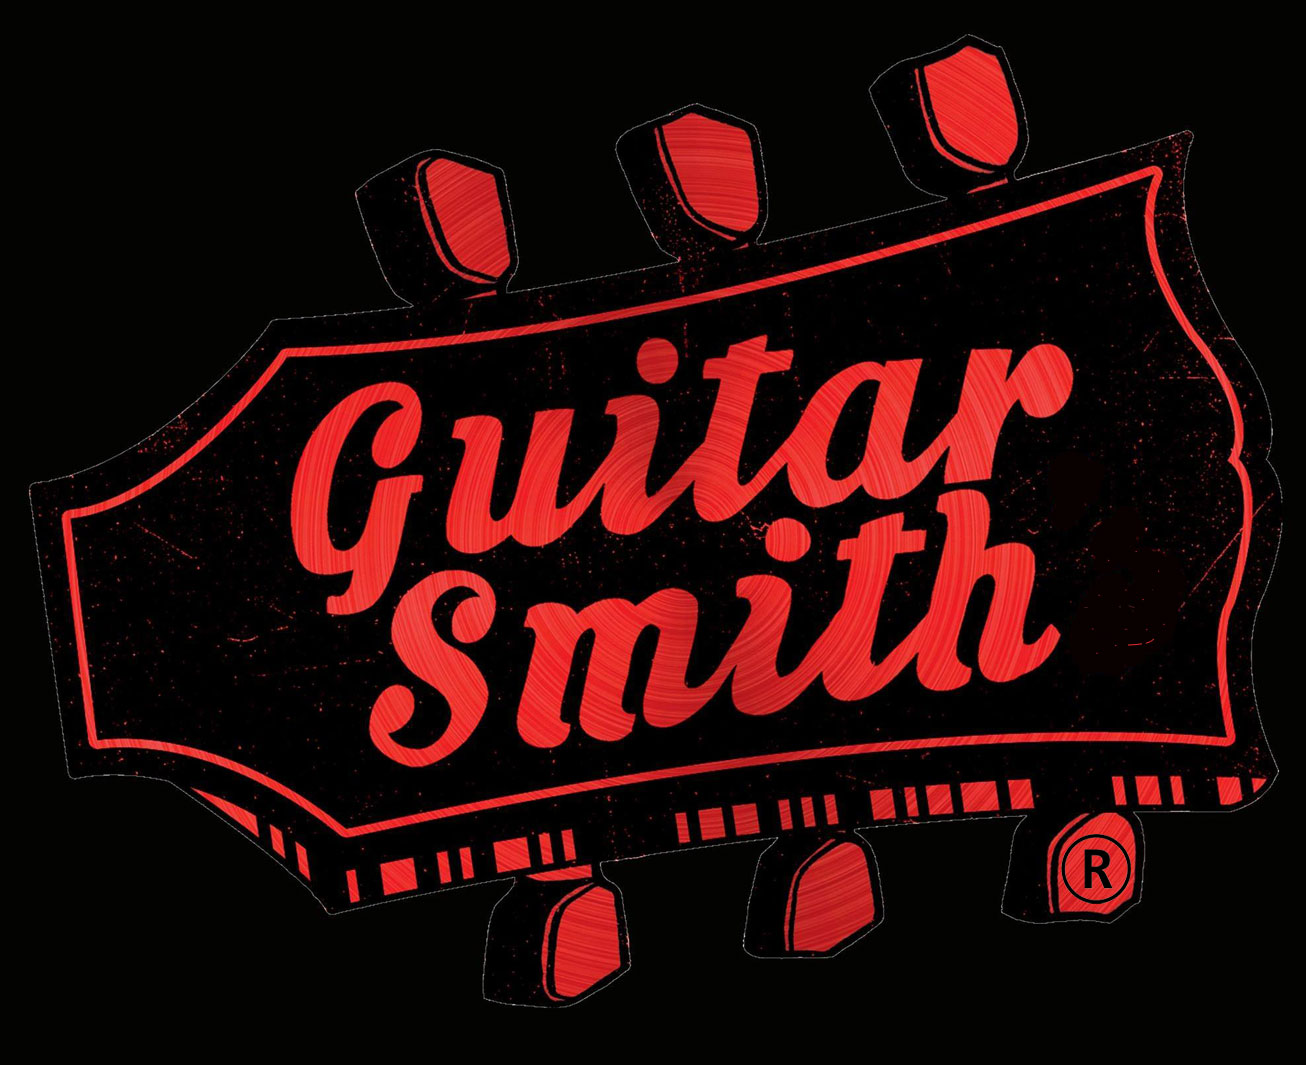 Guitarsmiths - Online Guitar Shop